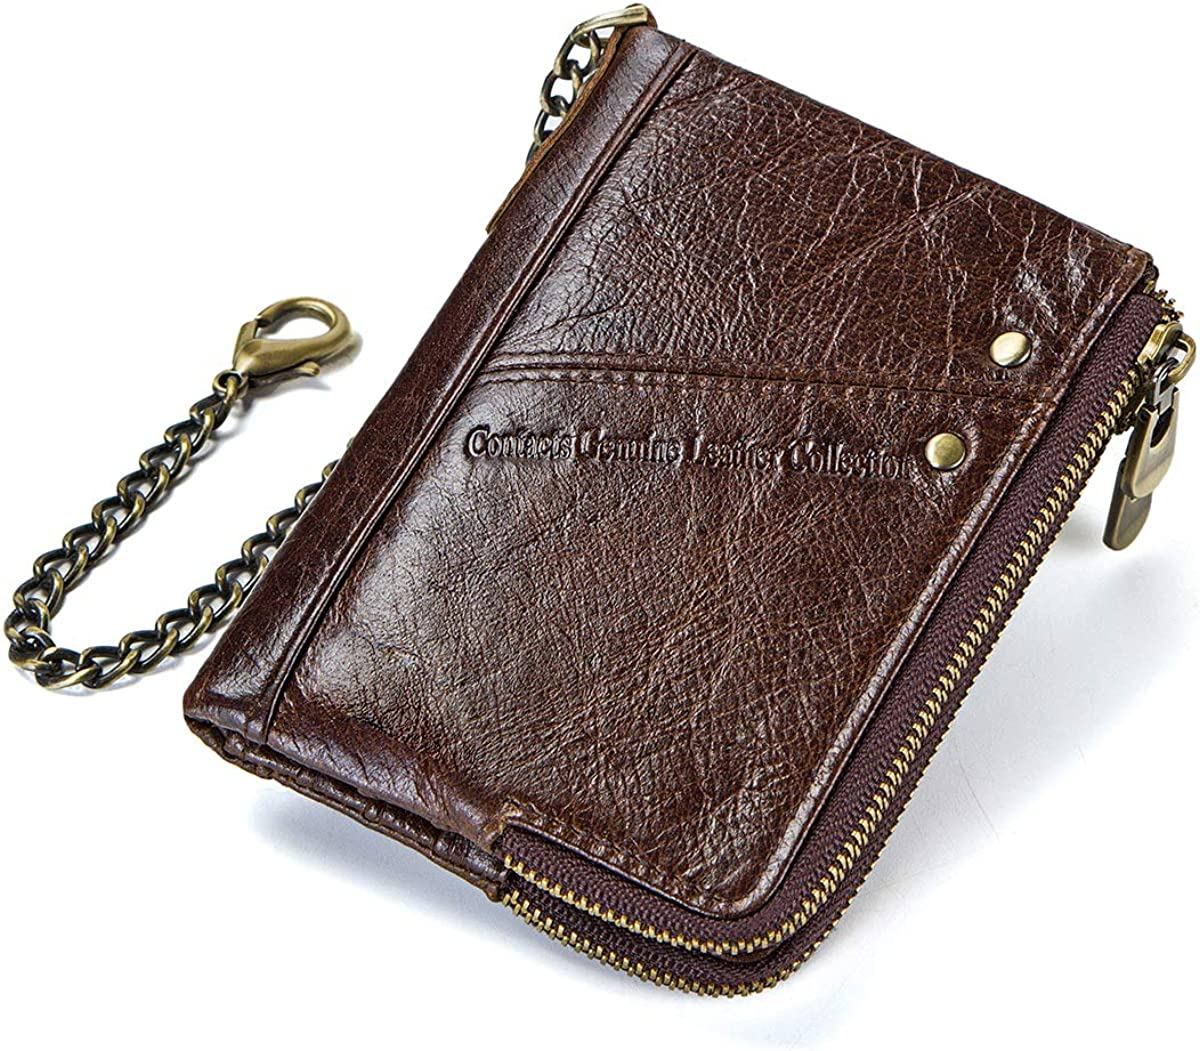 Contacts RFID Mens Genuine Leather Double Zipper Pocket Bifold Coin Wallet with Anti-Theft Chain, Coffee, One Size